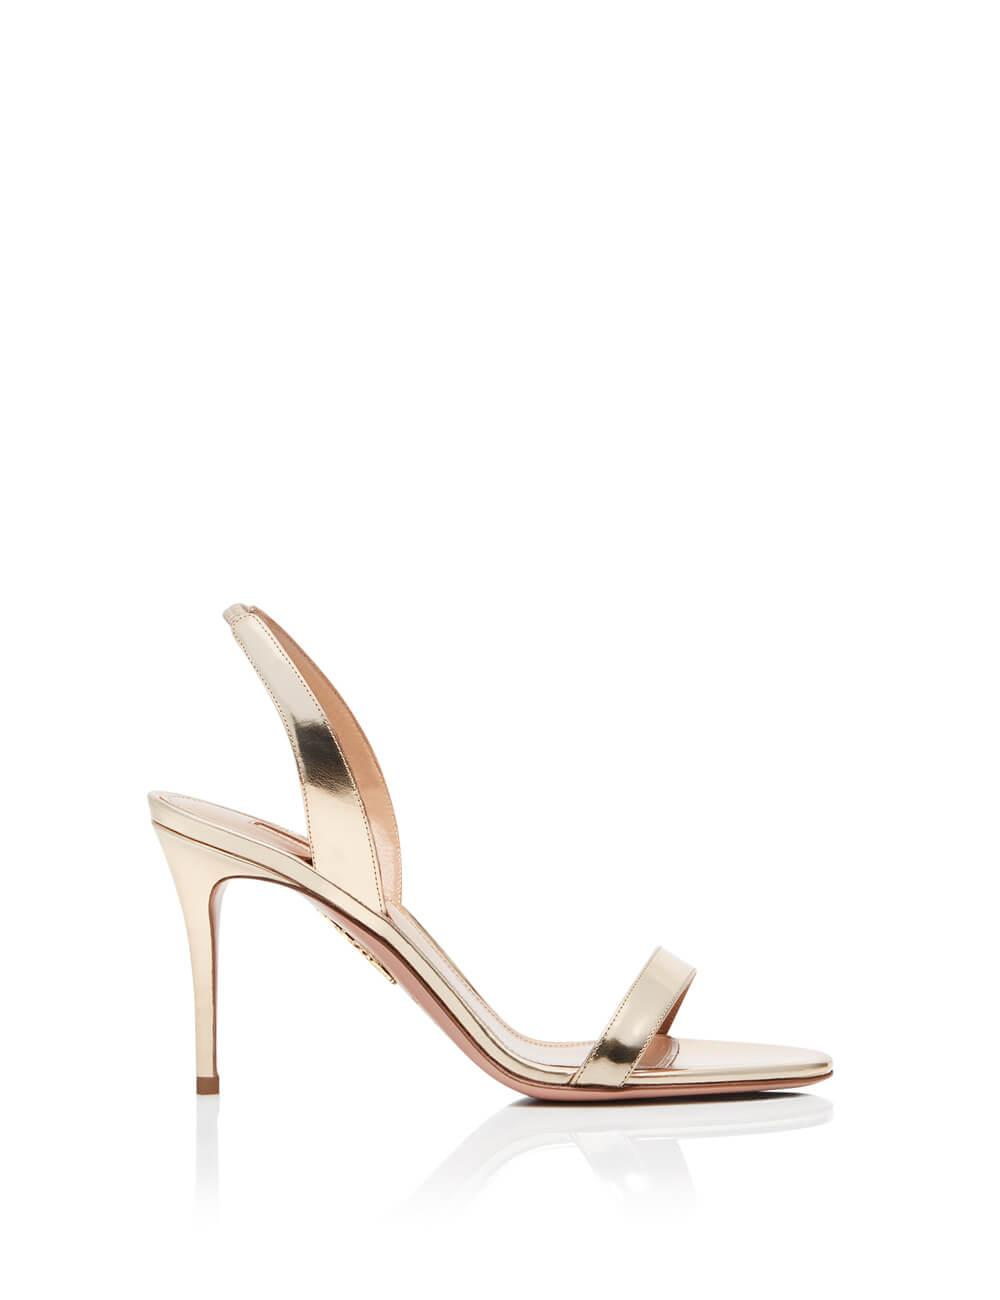 So Nude 85mm Sandal